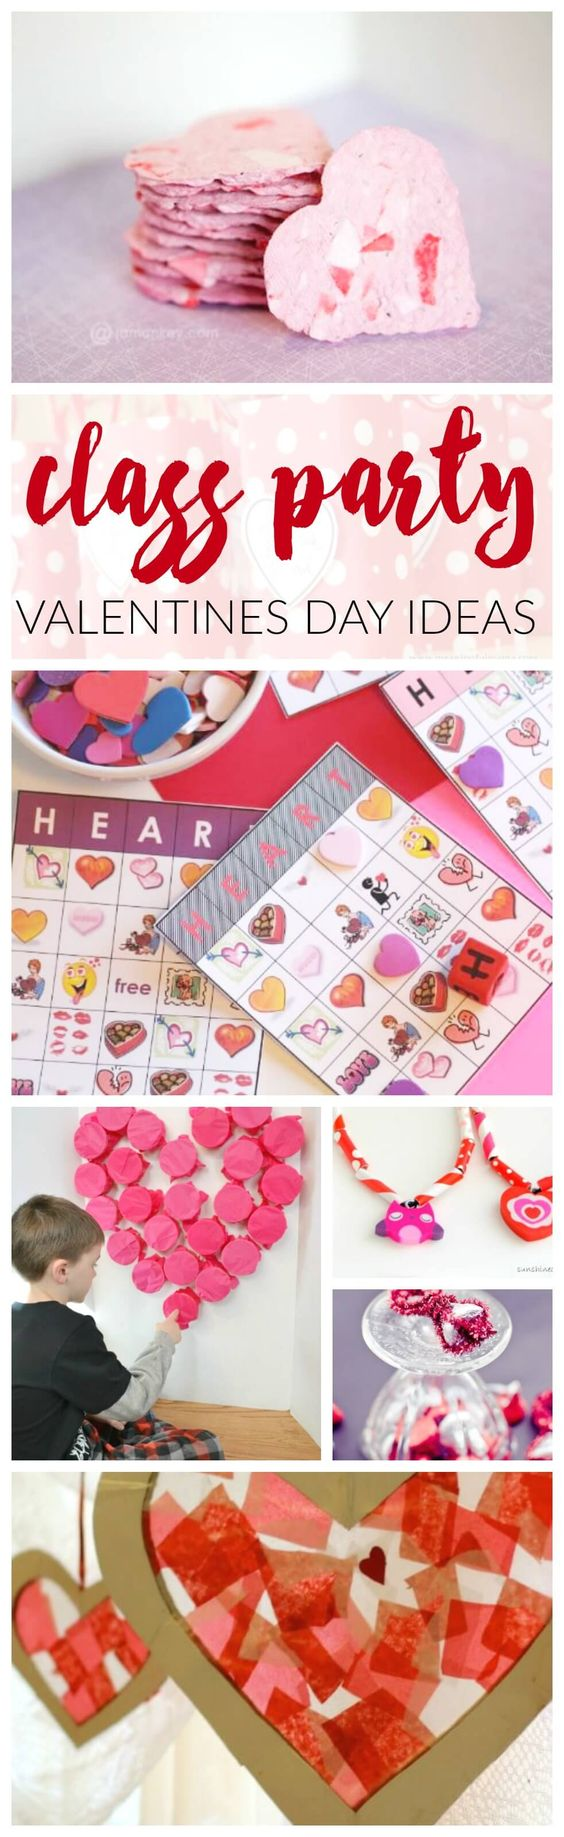 Class Party Ideas for Valentine's Day! How to throw a great party for your kids and their friends!: